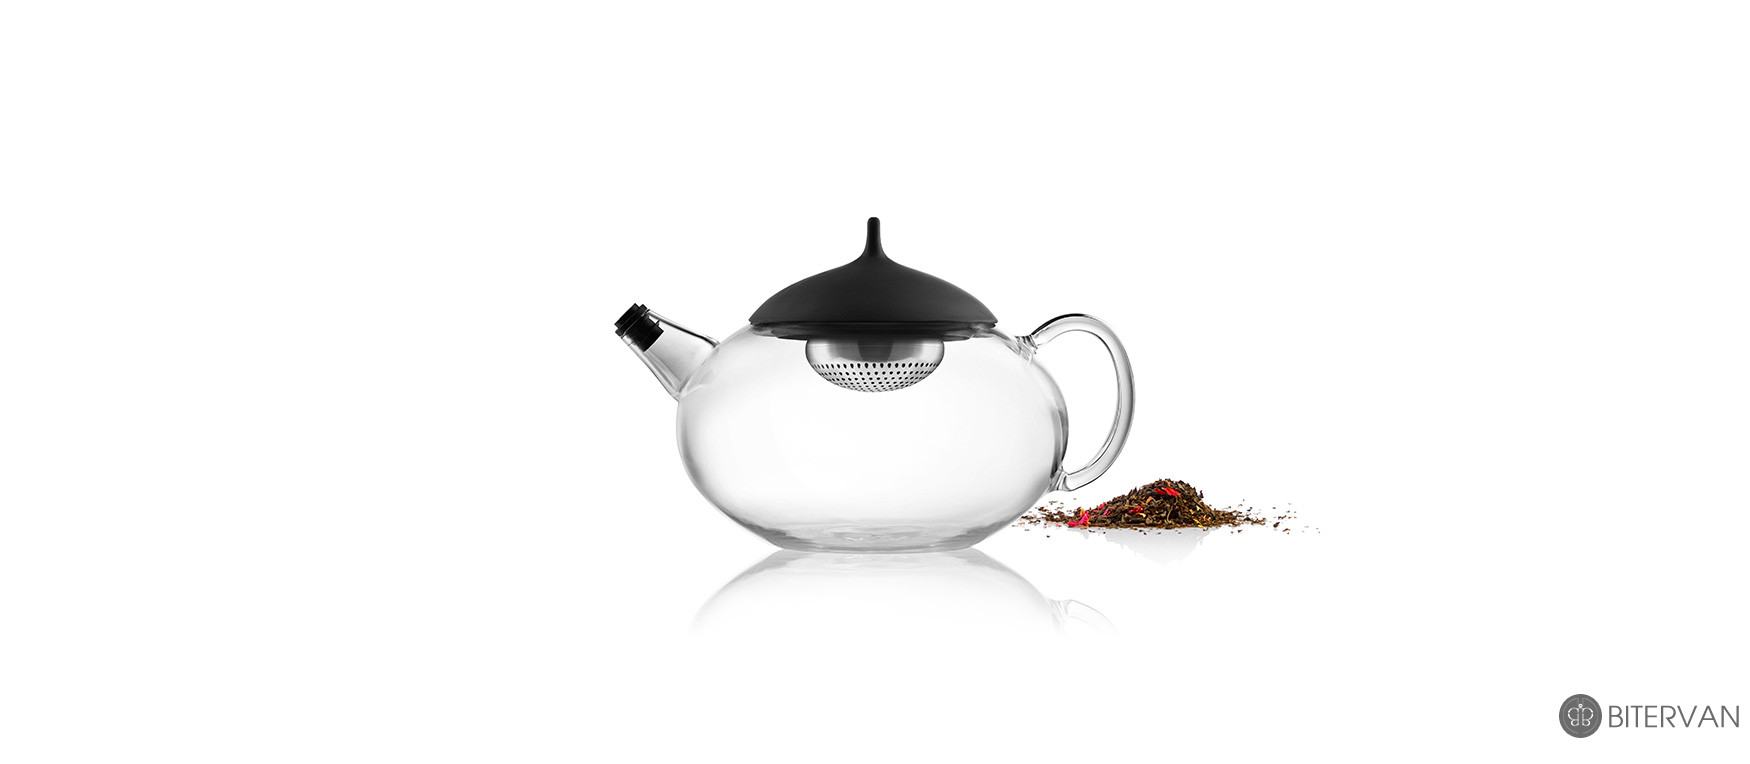 eva solo, glass teapot with a built-in tea egg, 1.0 l